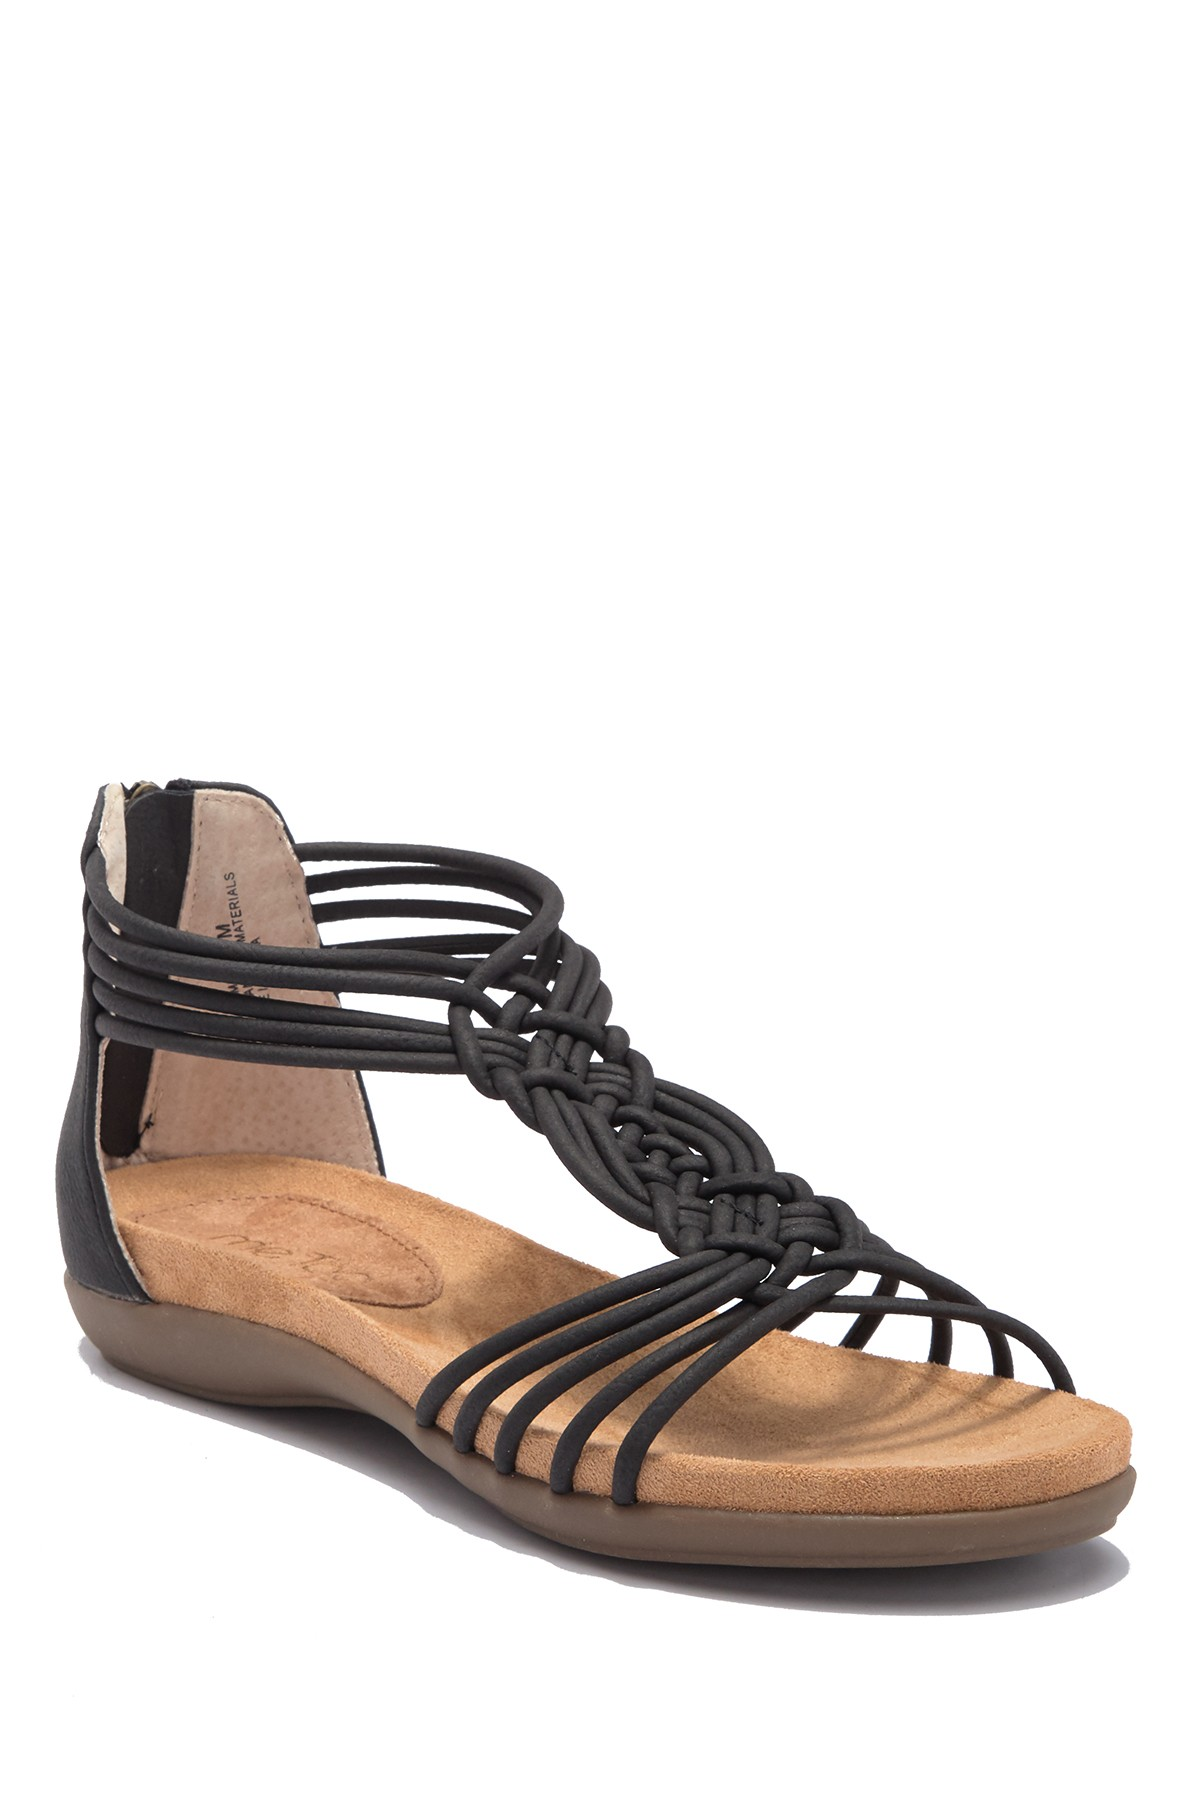 25cd2bc9490 Details about Me Too Womens CAMILLA Braided Strappy Sandal